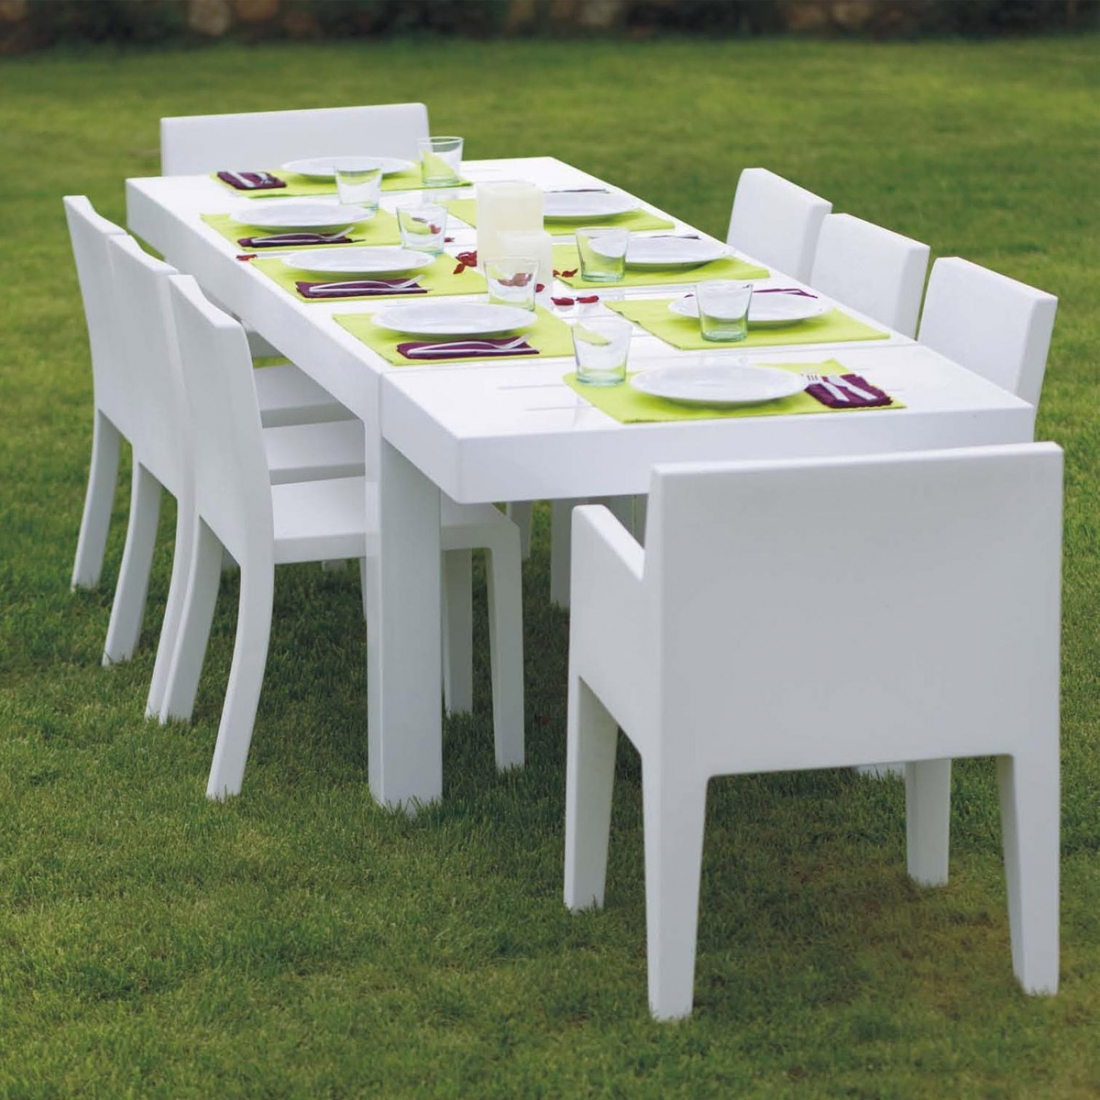 Table de jardin design 10 personnes jut par vondom for Design exterieur jardin